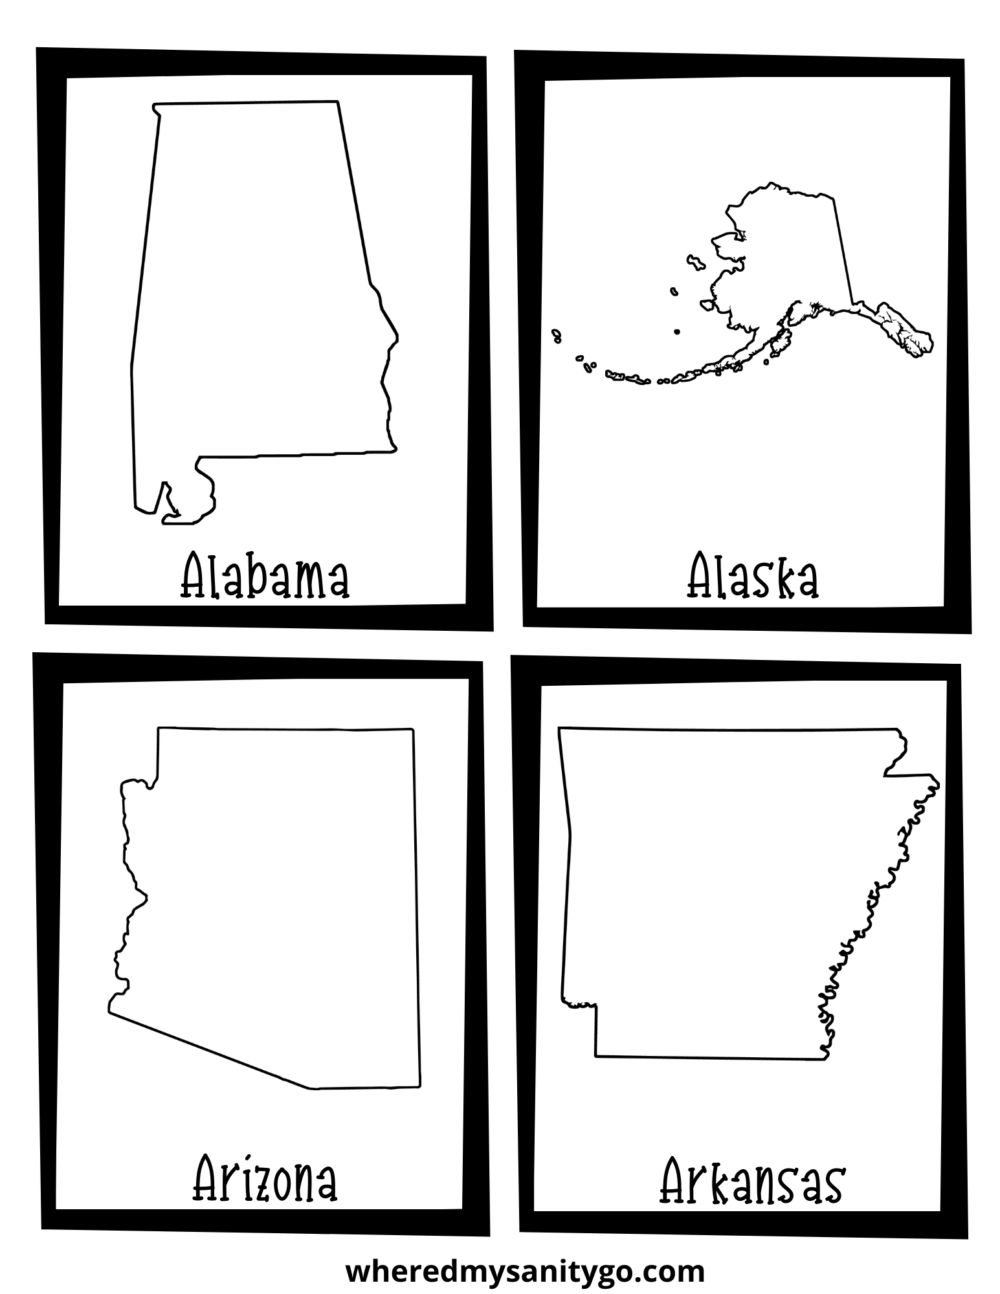 50 States Flashcards Free Printable For Learning The Us Map